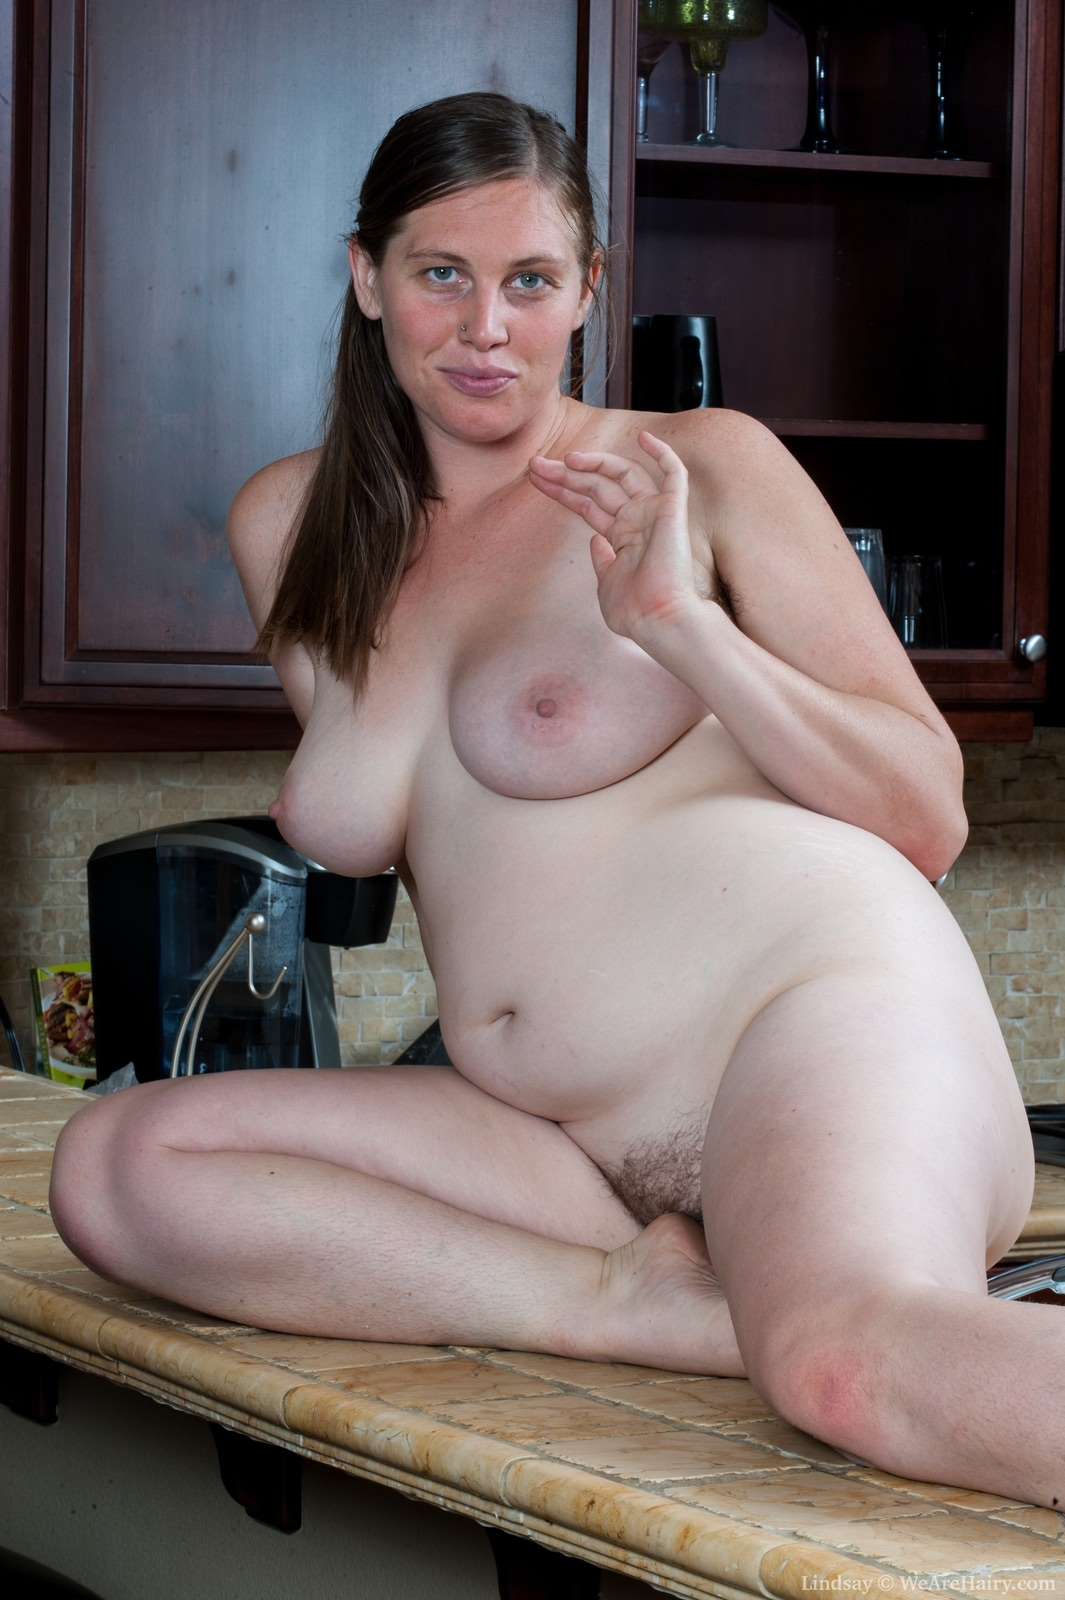 Very Hairy pussy chubby girl pigtails apologise